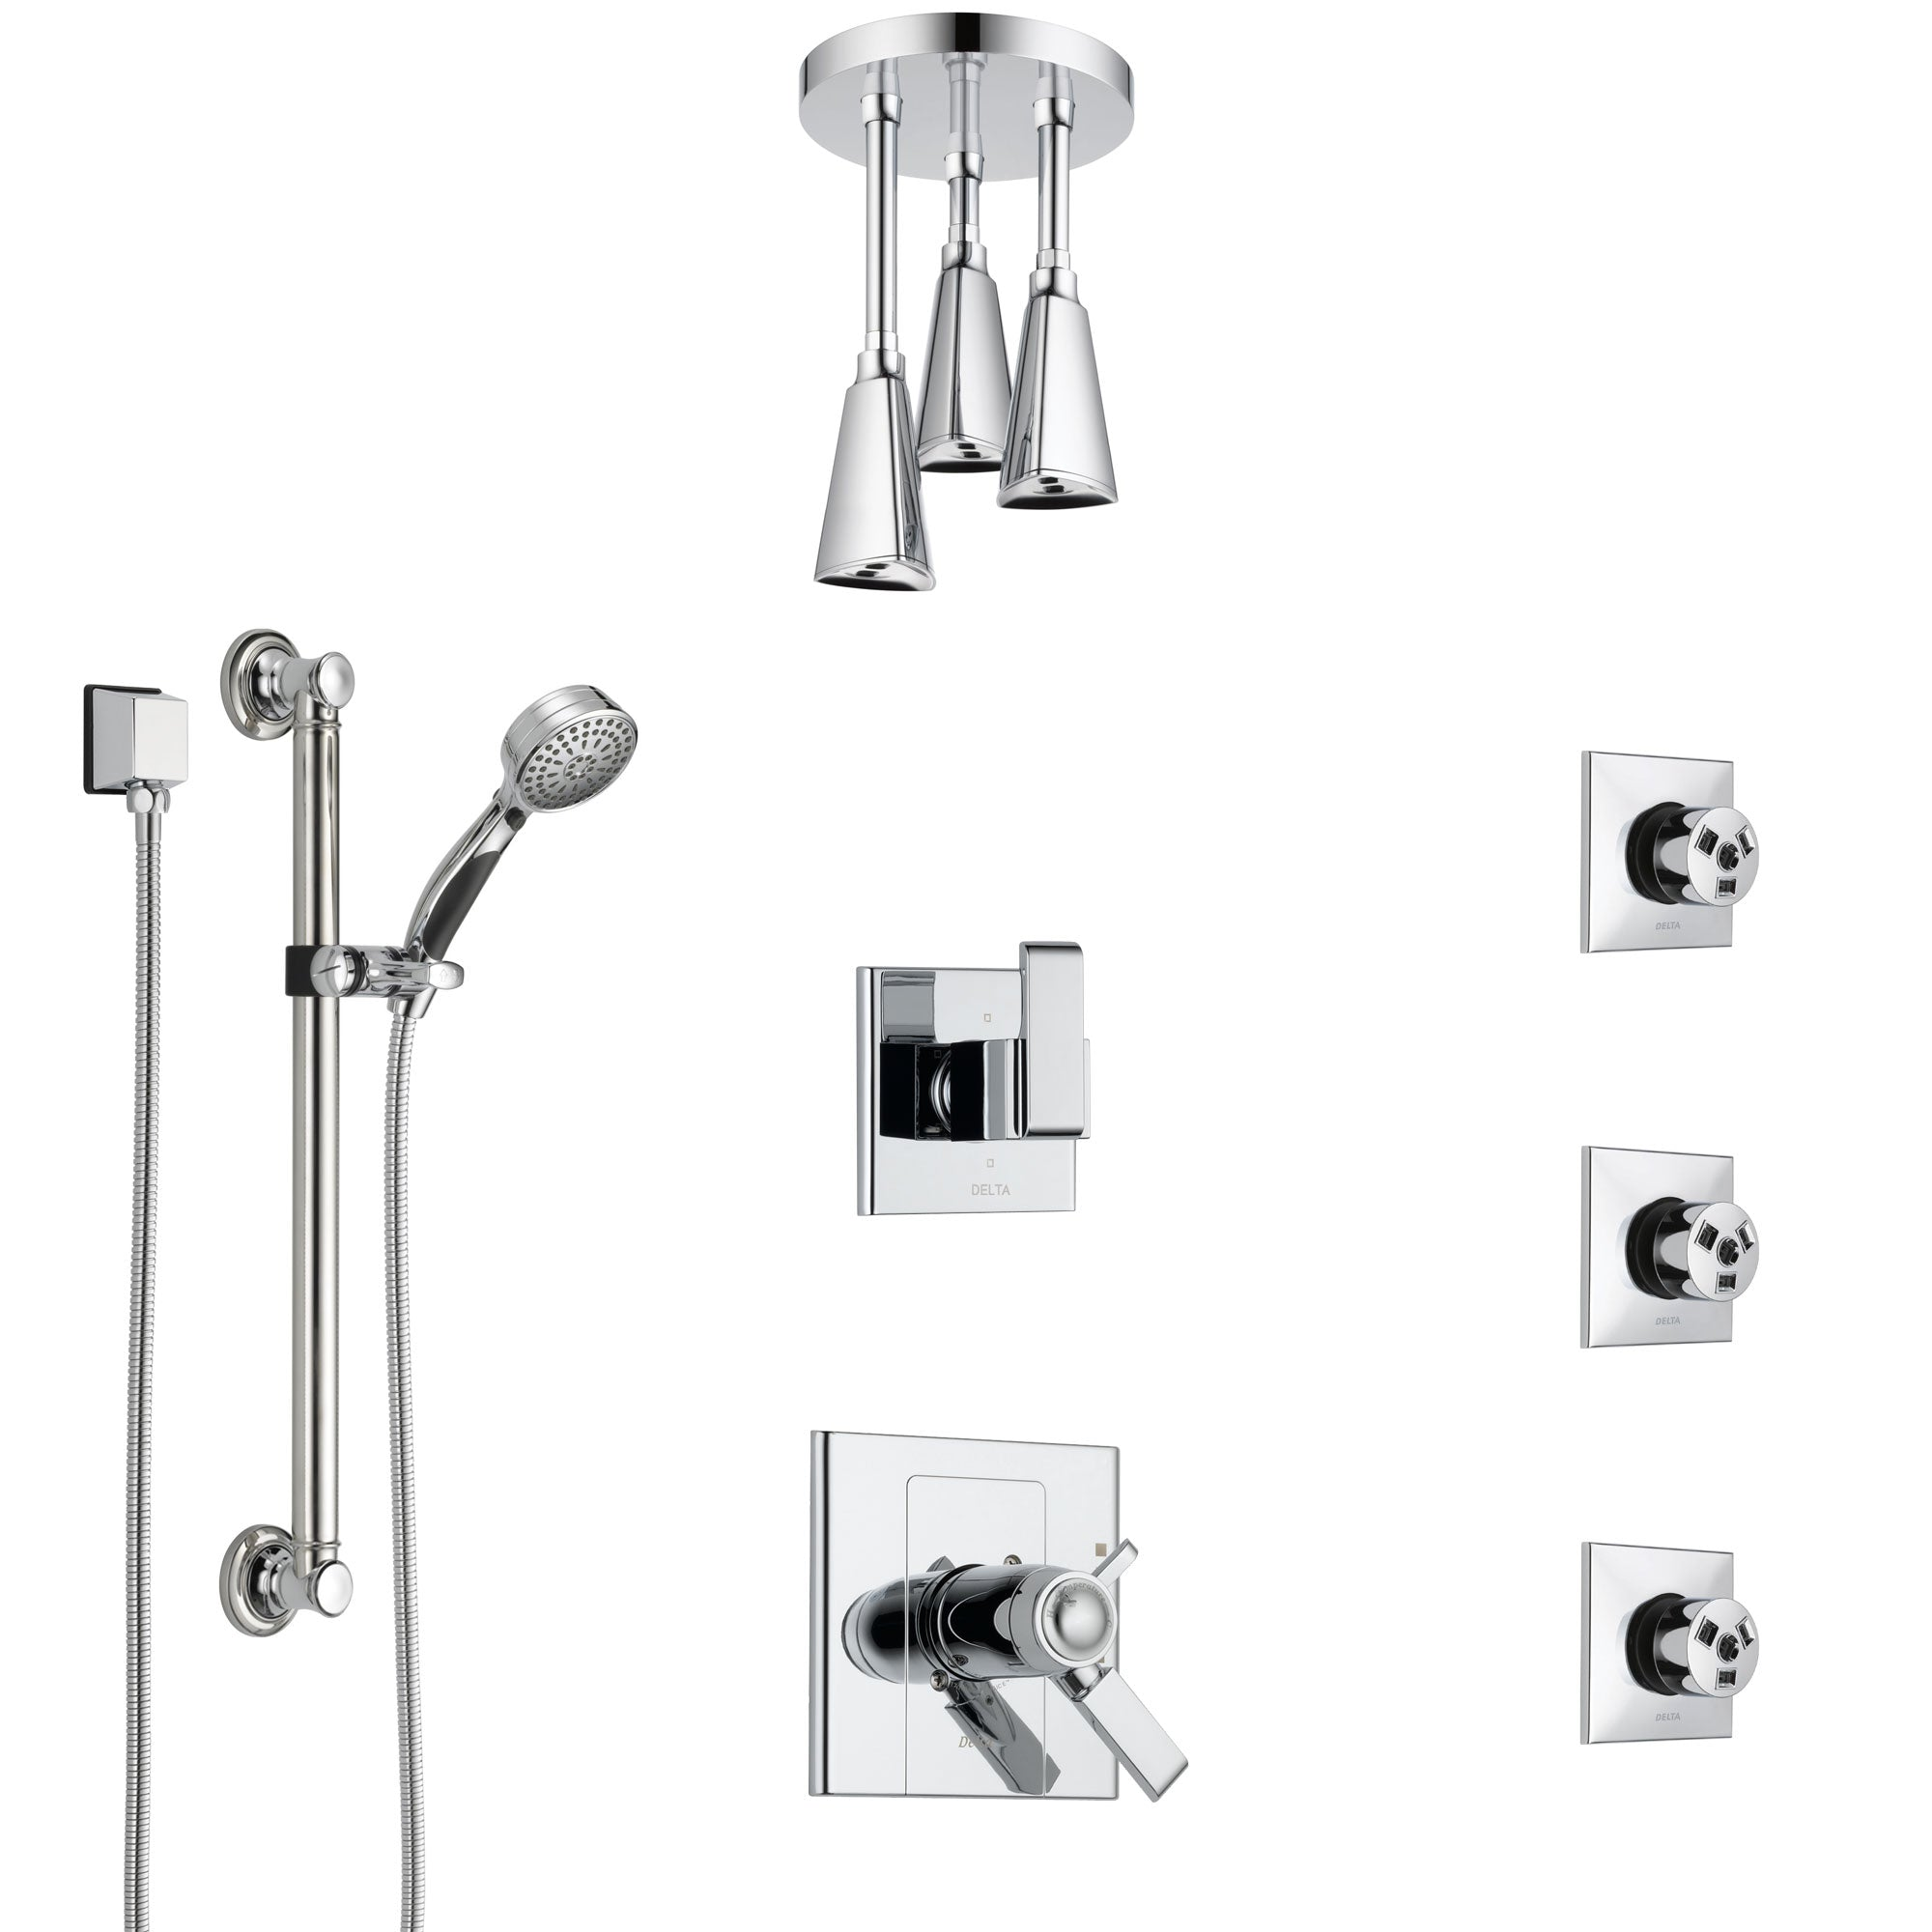 Delta Arzo Chrome Shower System with Dual Thermostatic Control, Diverter, Ceiling Mount Showerhead, 3 Body Sprays, and Grab Bar Hand Shower SS17T8623